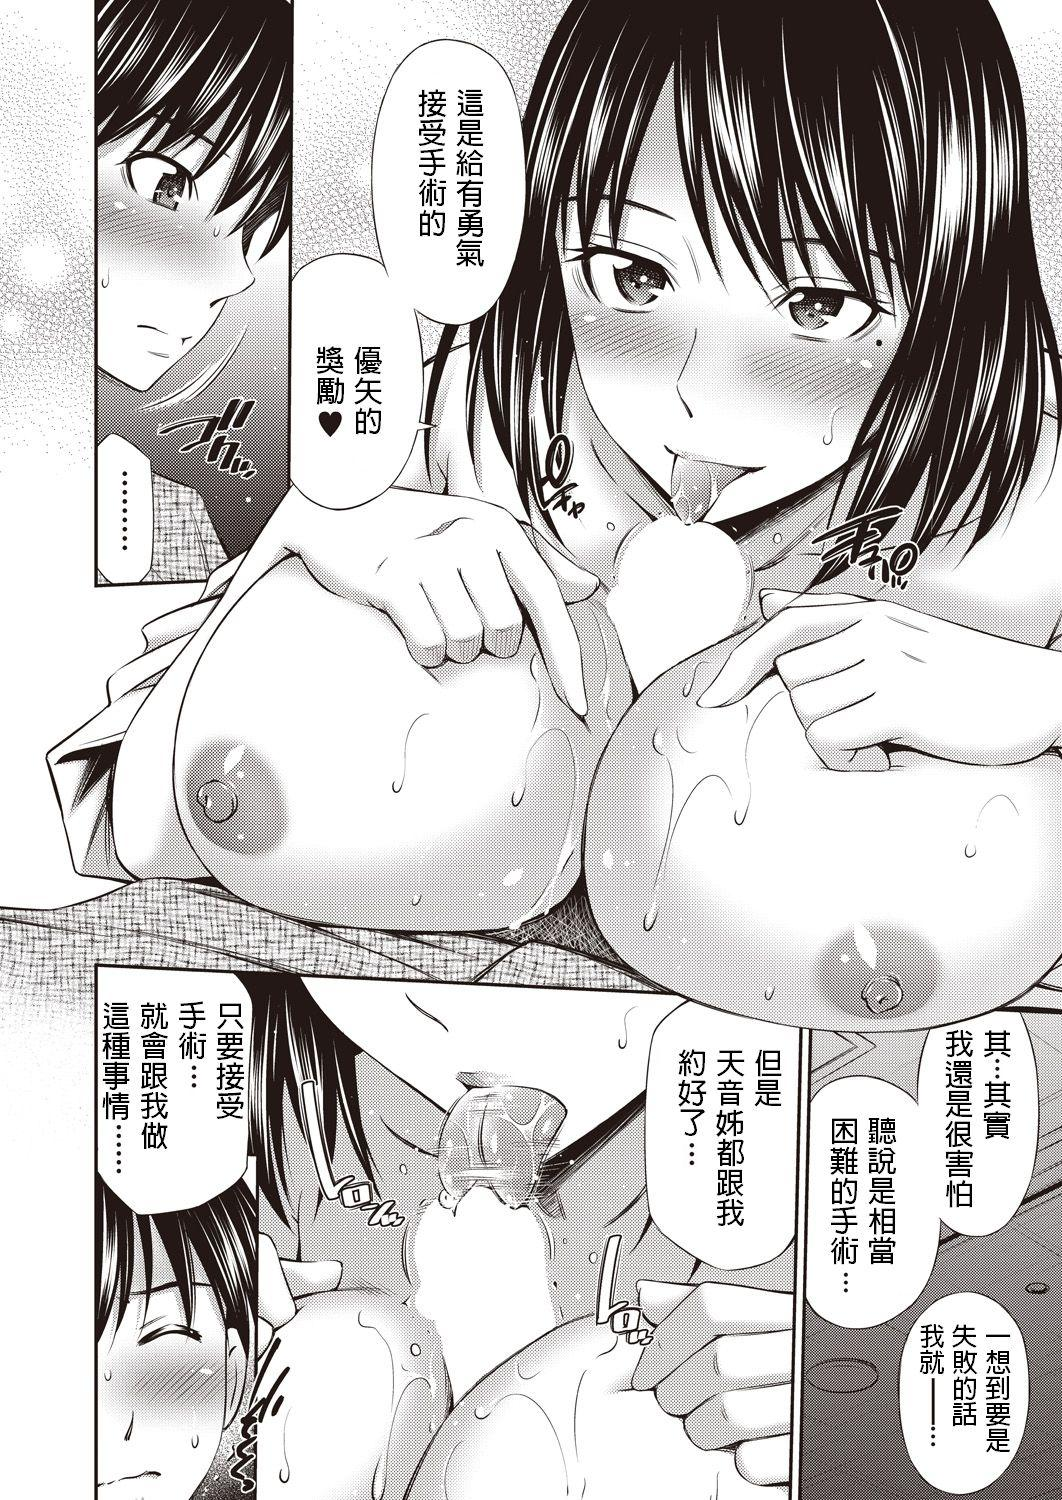 Tenshi no Gohoubi - Angel's Reward 5